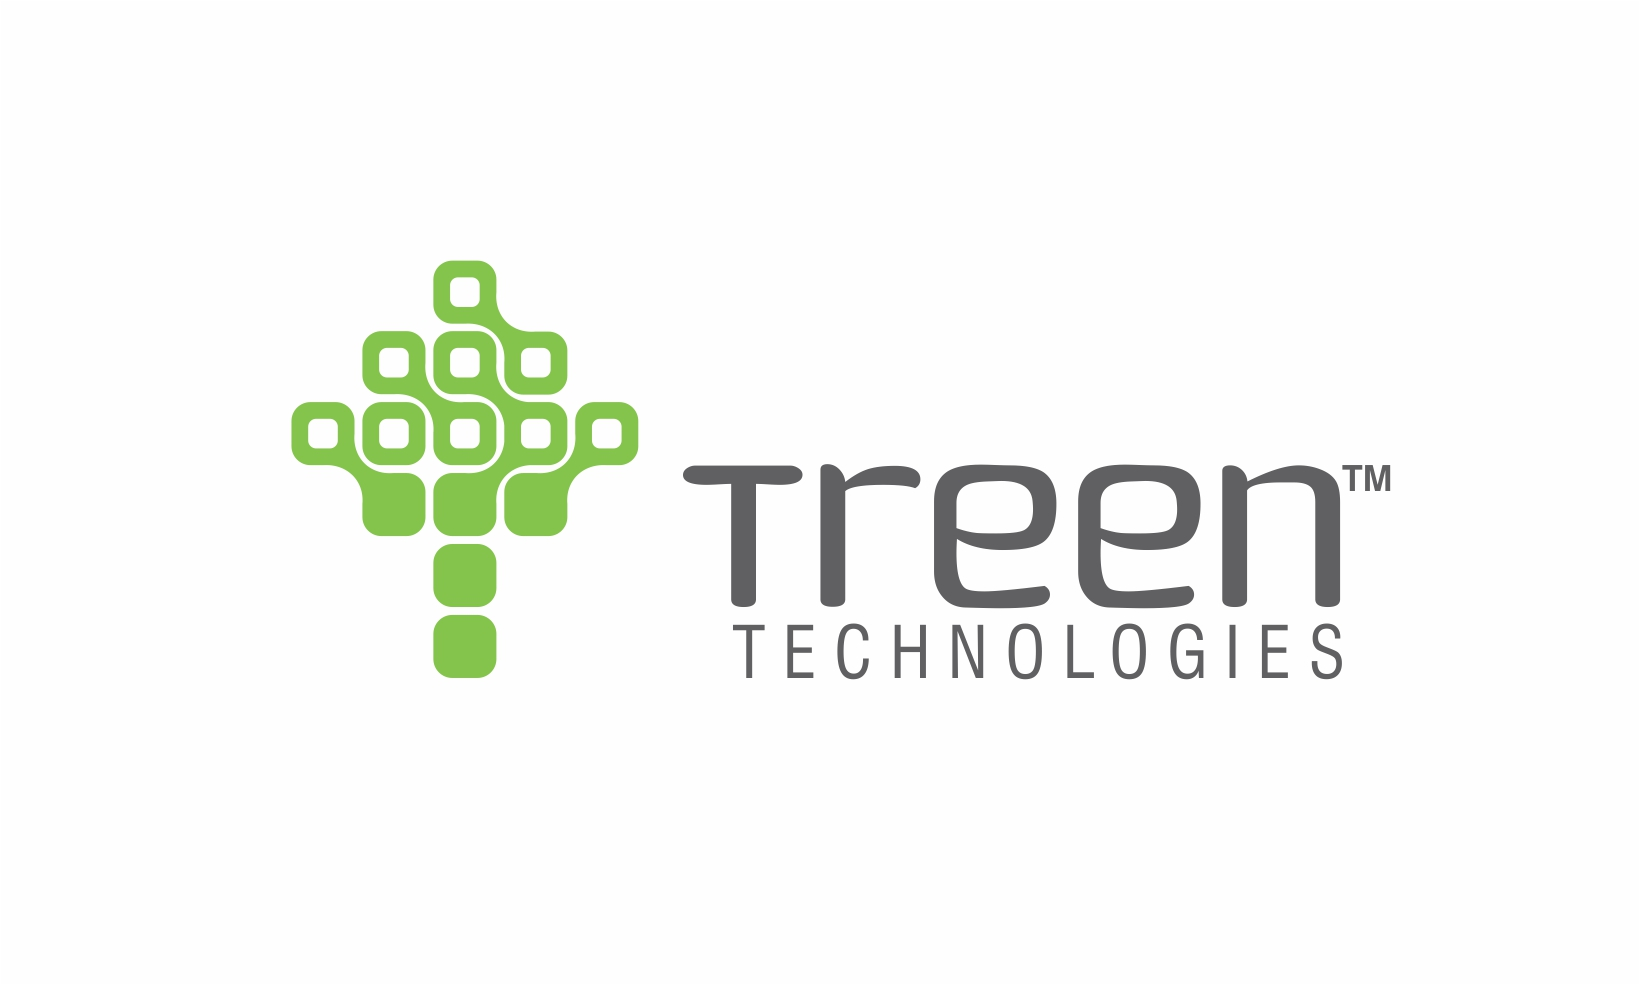 technology company technologies logos google treen brand names name designs engineering india brands inspiration wood computer vision additional saved